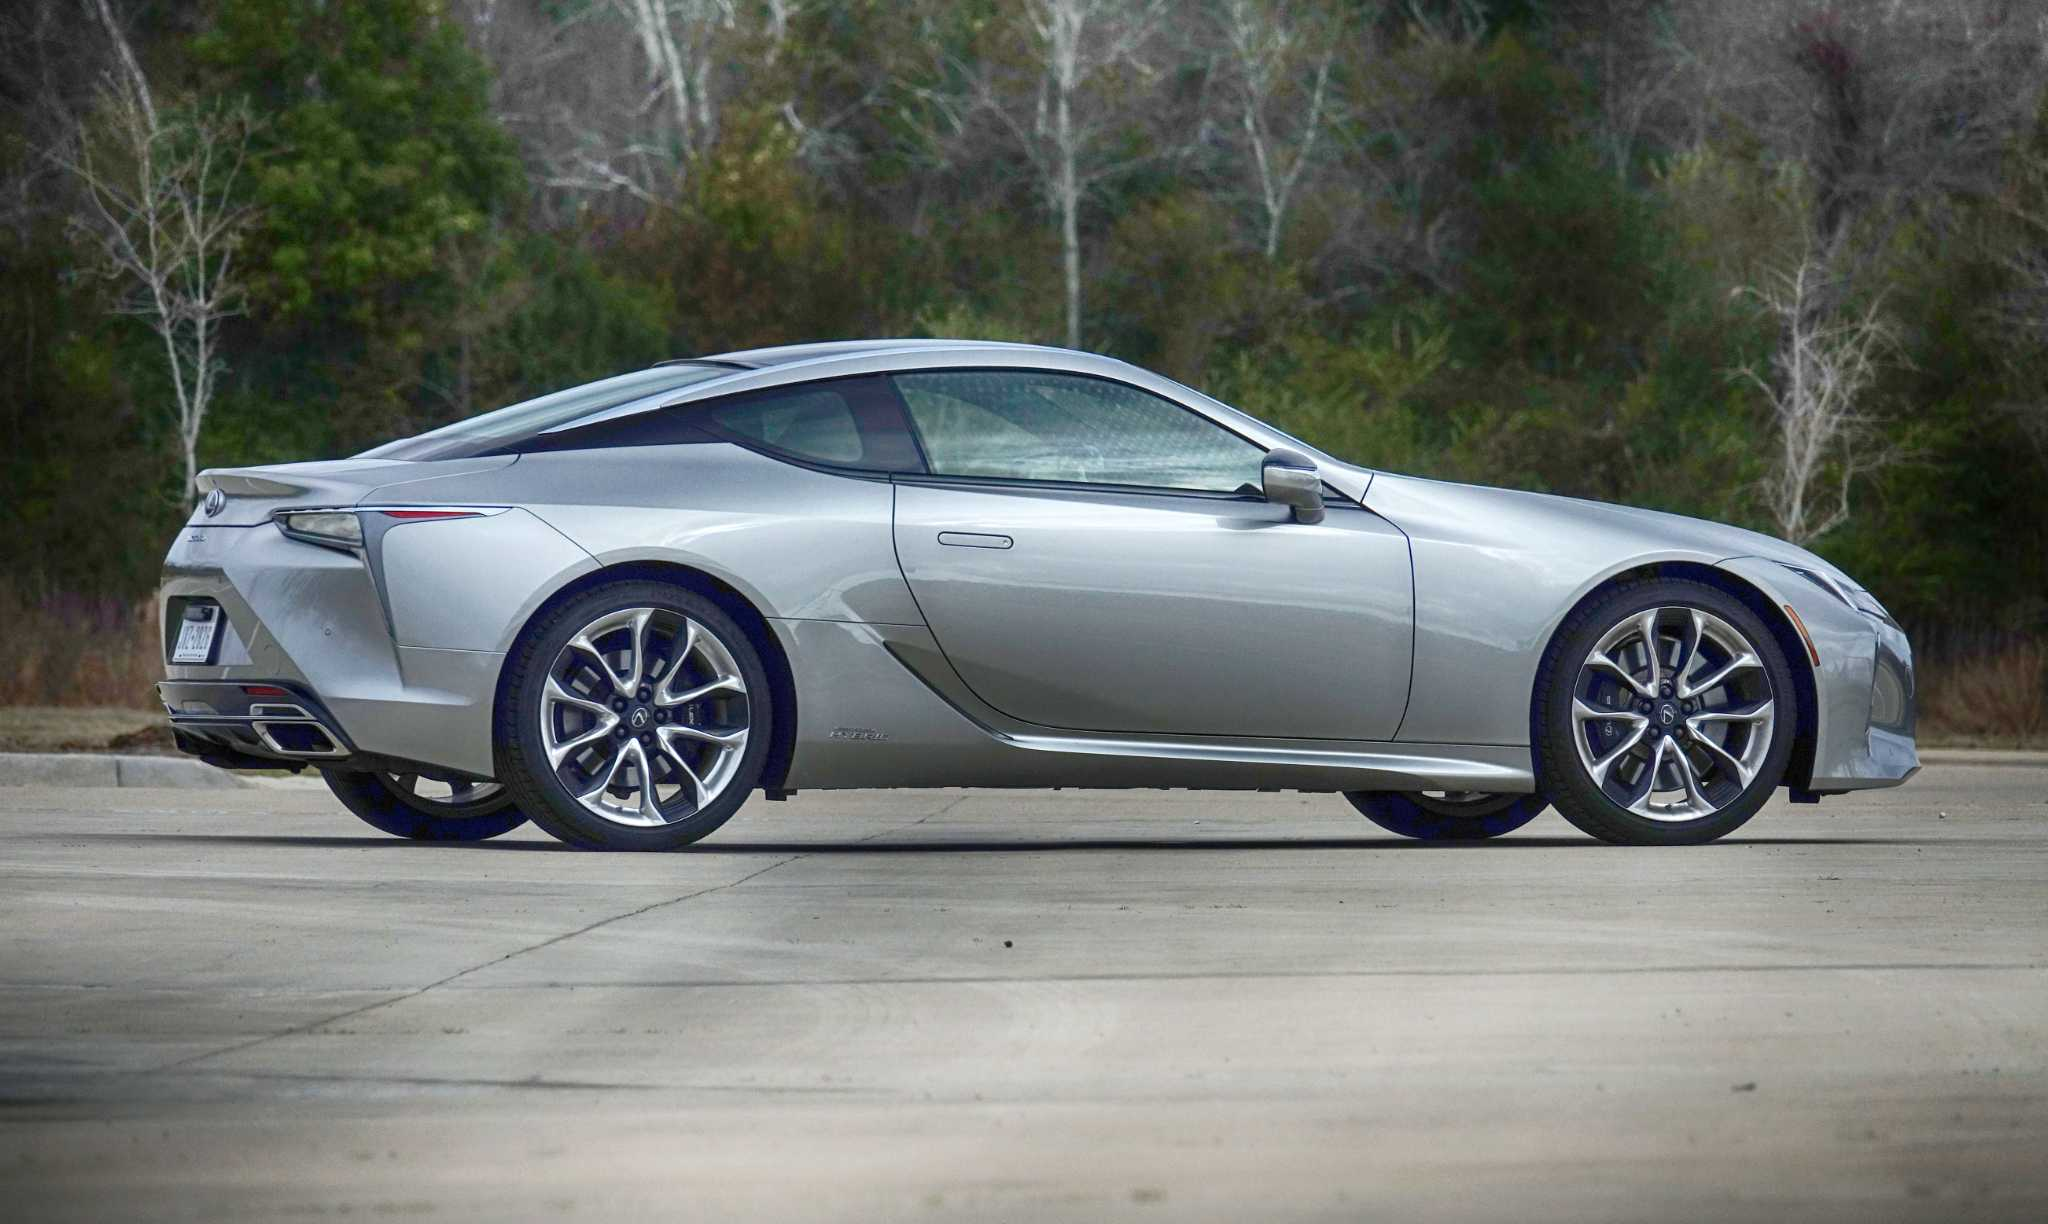 Stunning LEXUS LC 500H Grand Tourer pushes the envelope